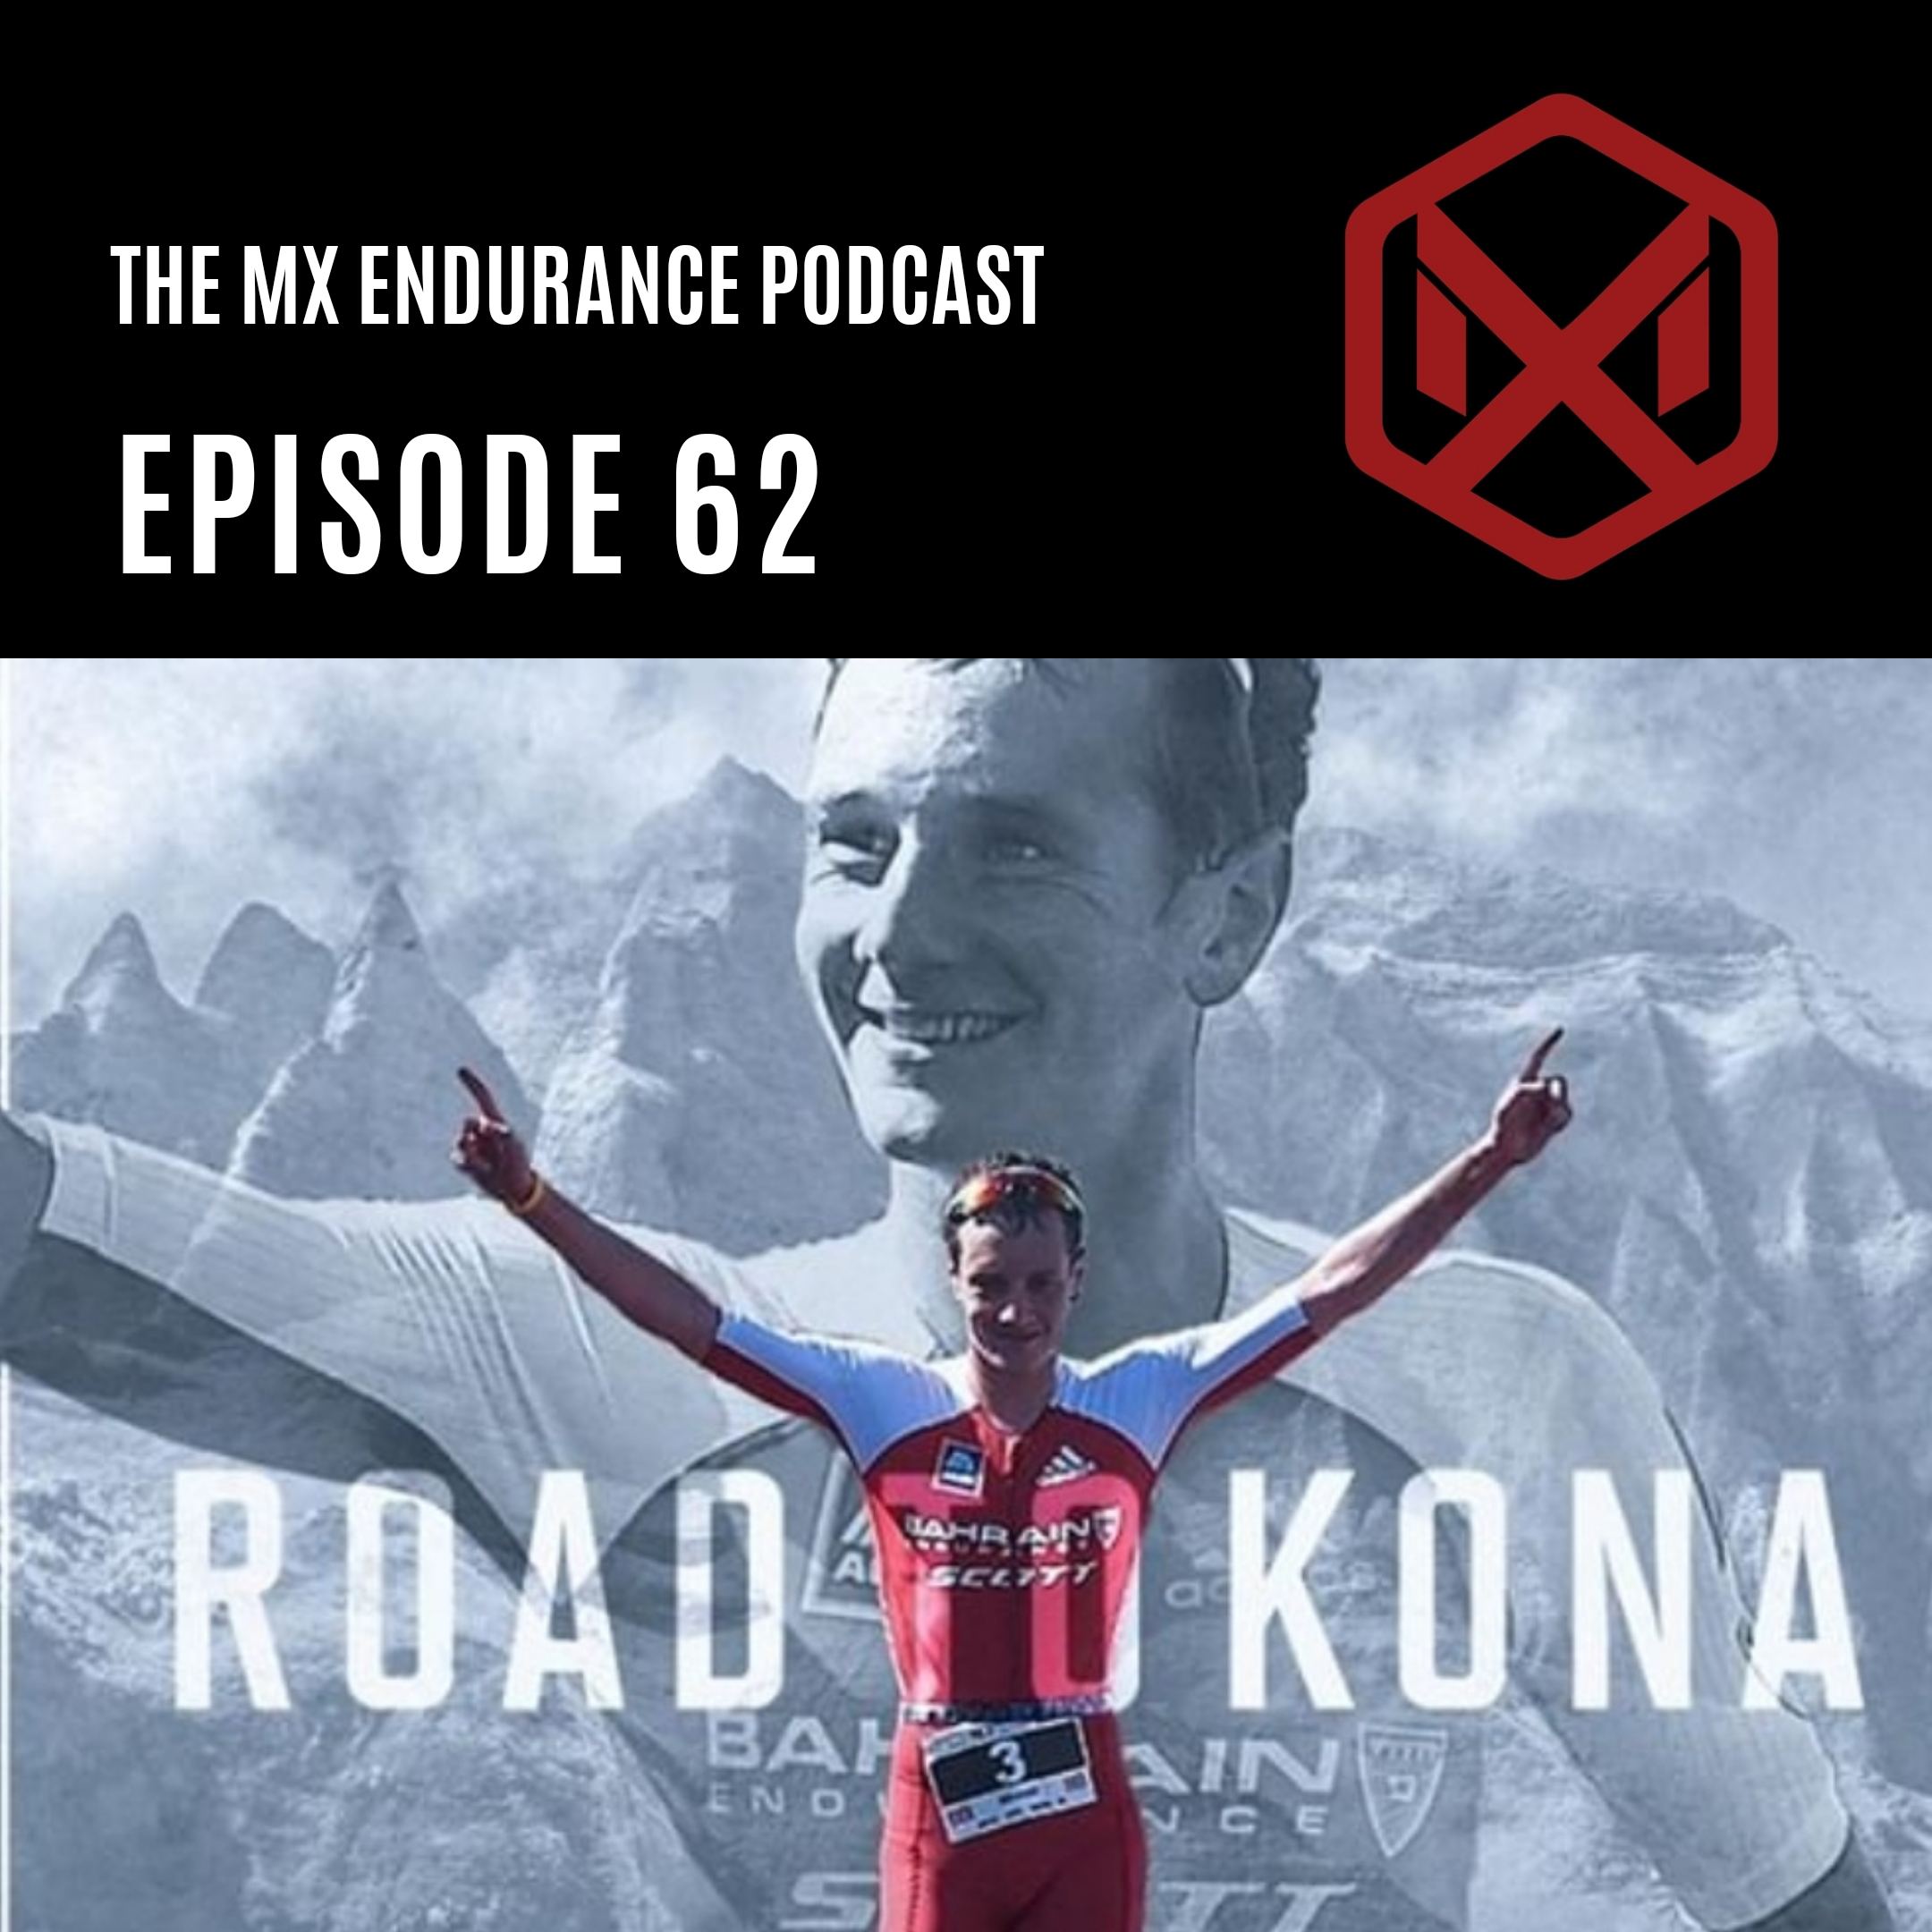 #62 - Brownlee Racing Iron Man & Interview with Rick Boethling from Race Across America